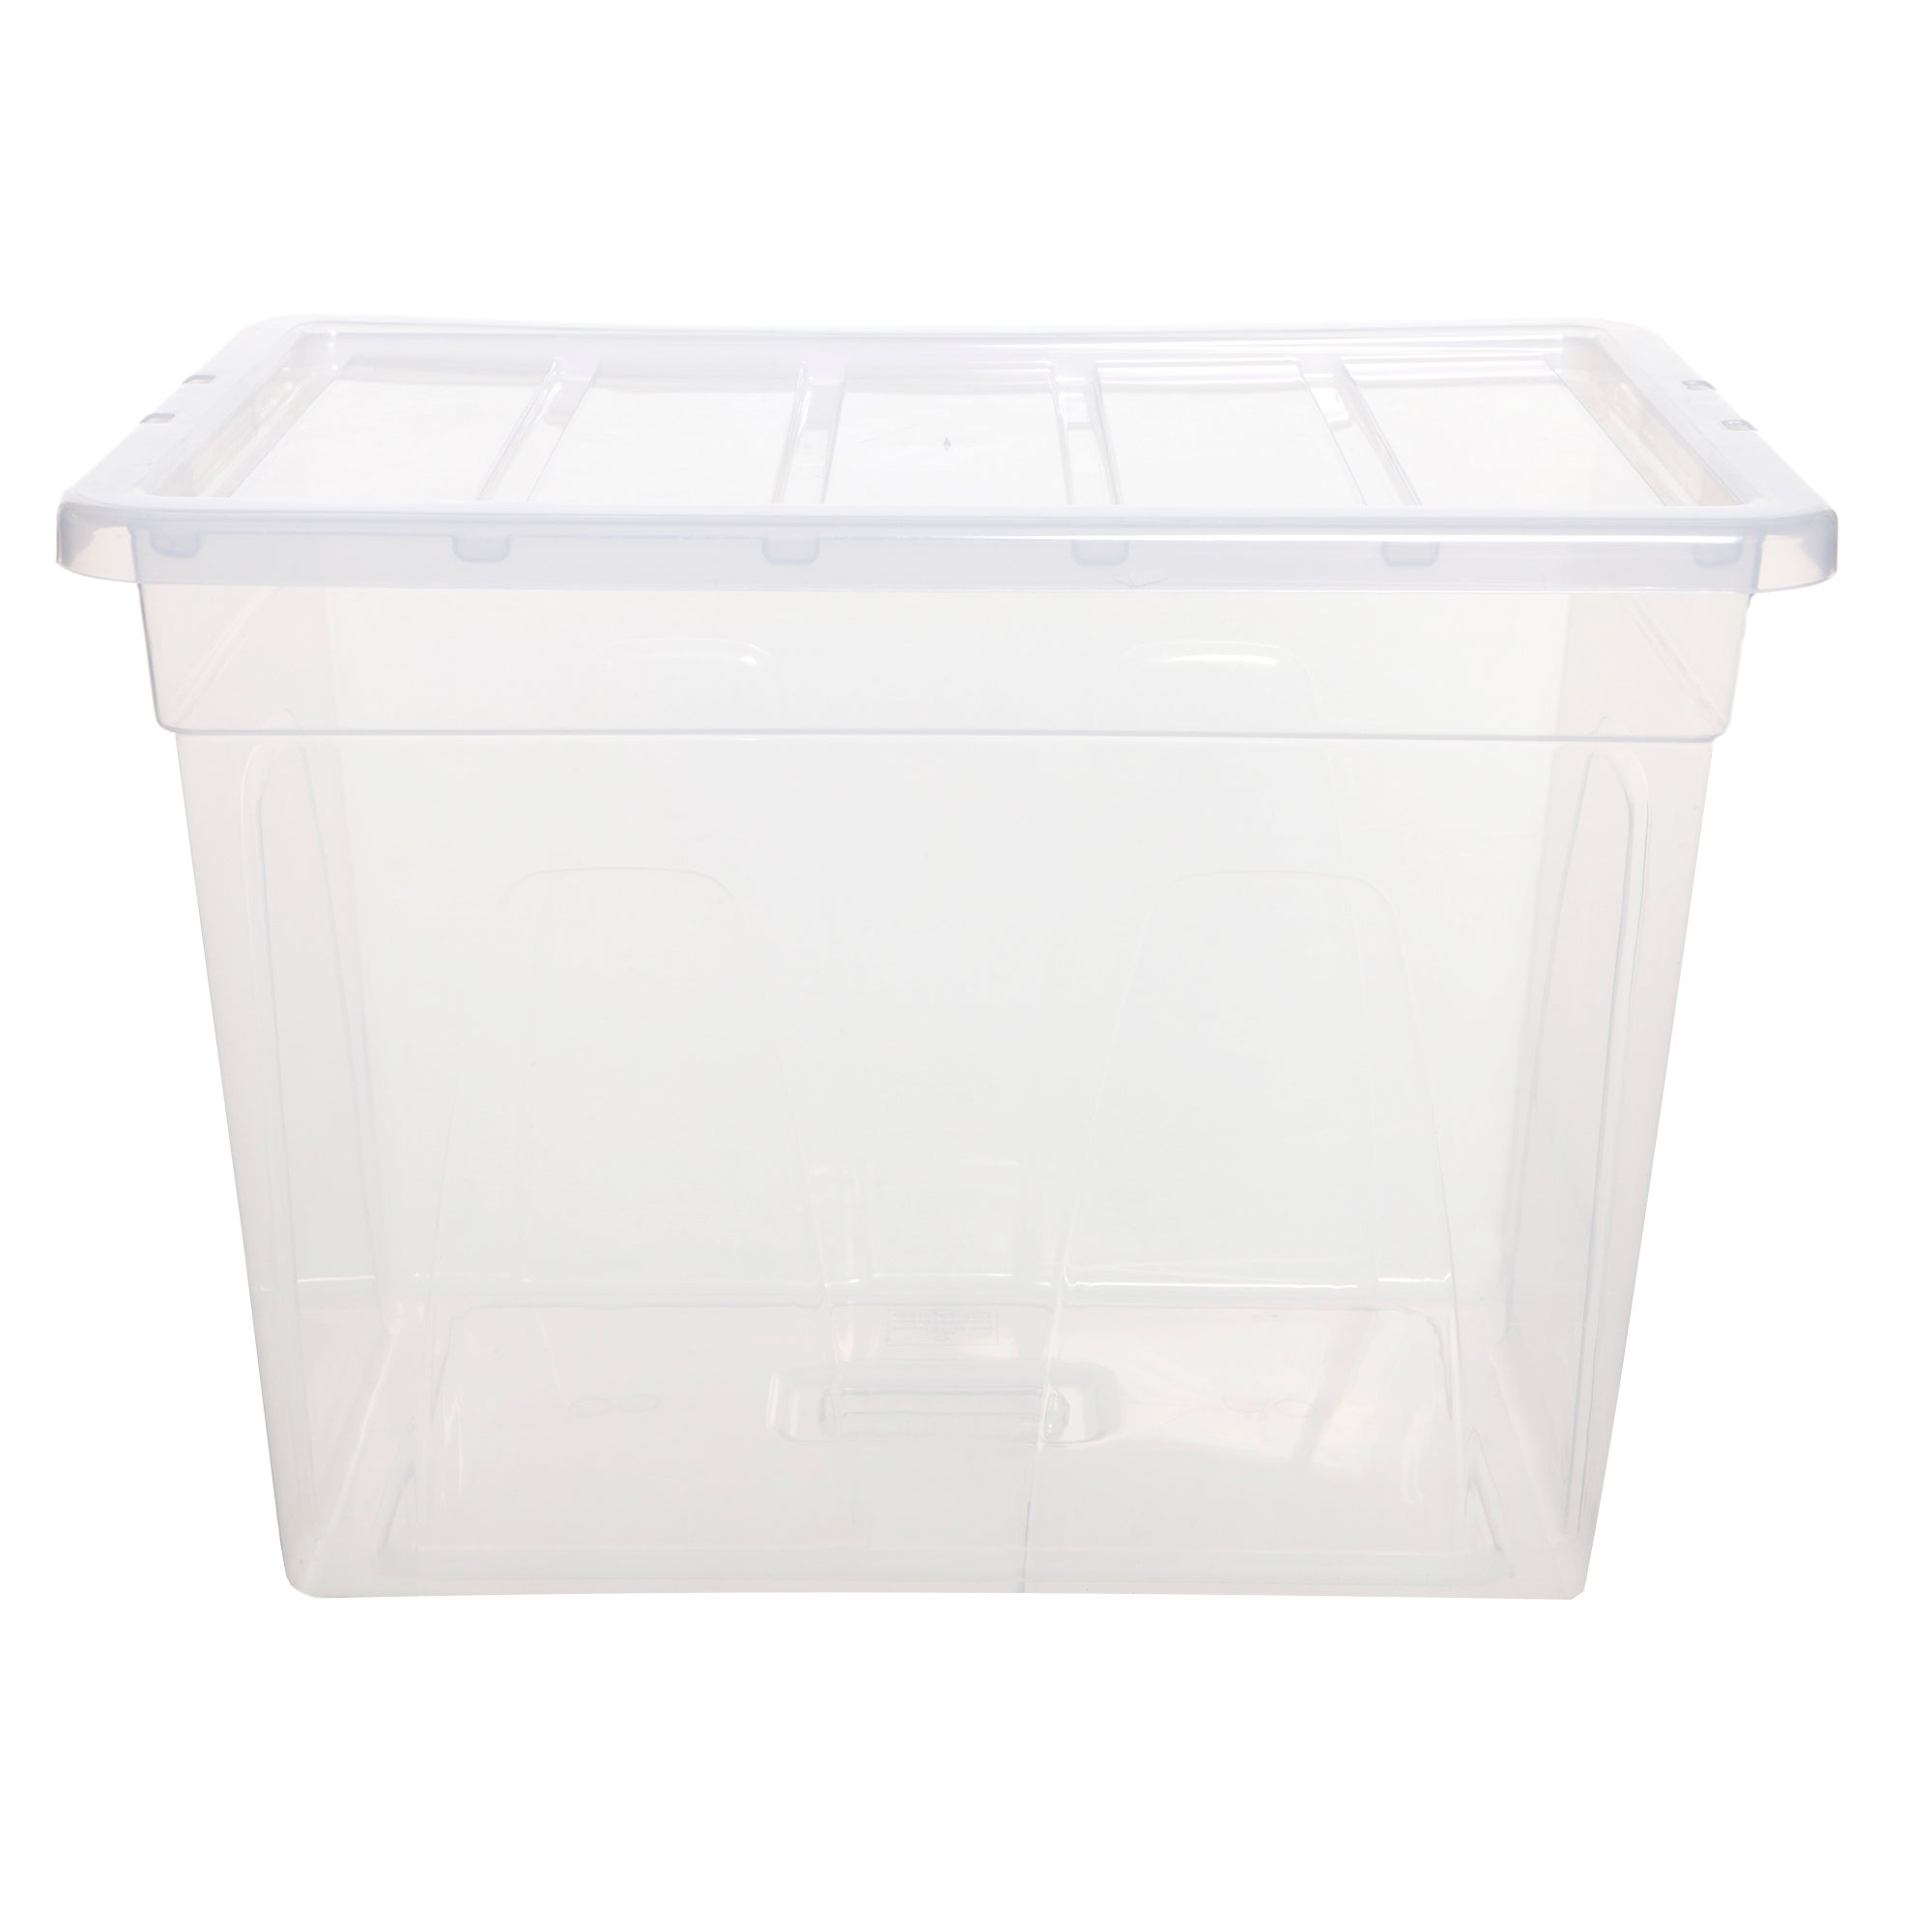 Spacemaster 66 Litre Storage Box Clear